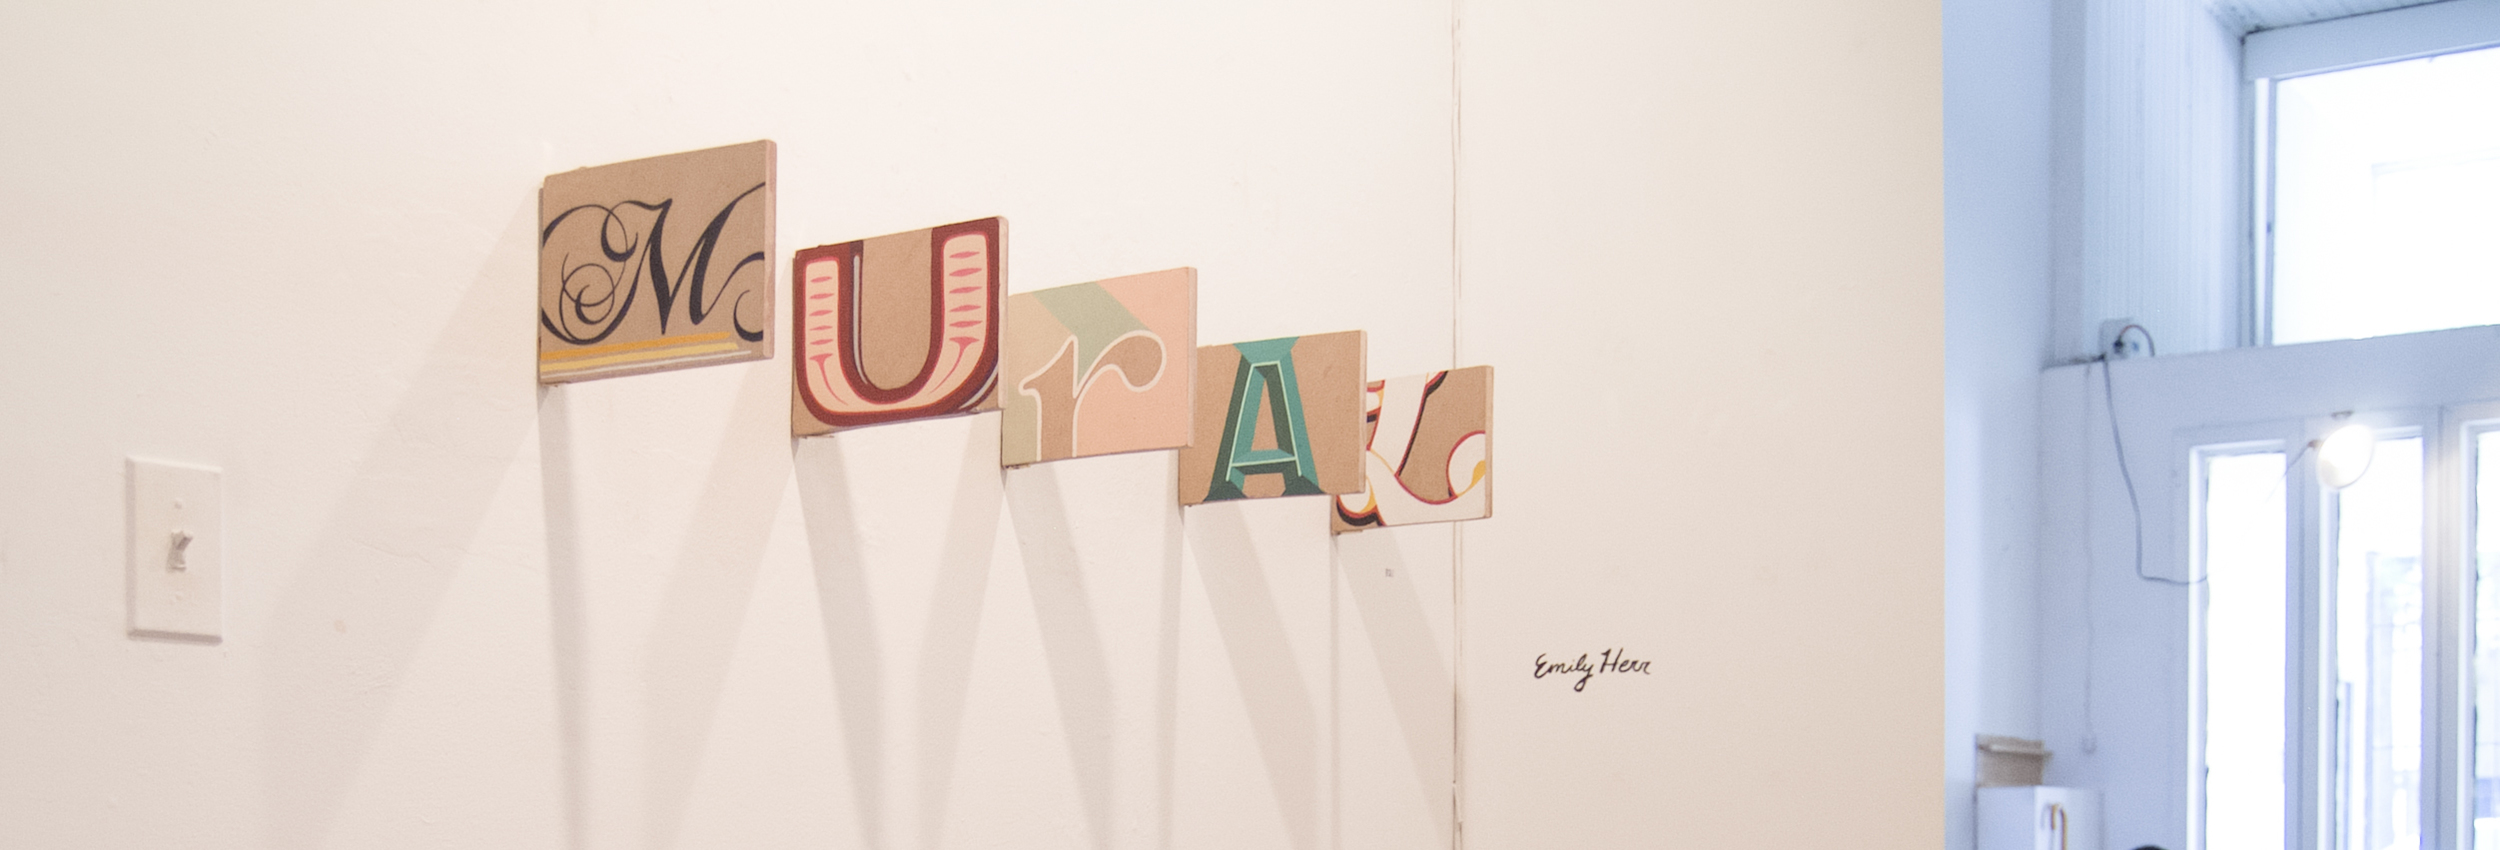 """I displayed these at the VCU Senior Show last year (the """"A"""" found a new home with some friends.) It was quite a trick to get them lined up as a word and leave both sides visible, but we figured it out just in time."""